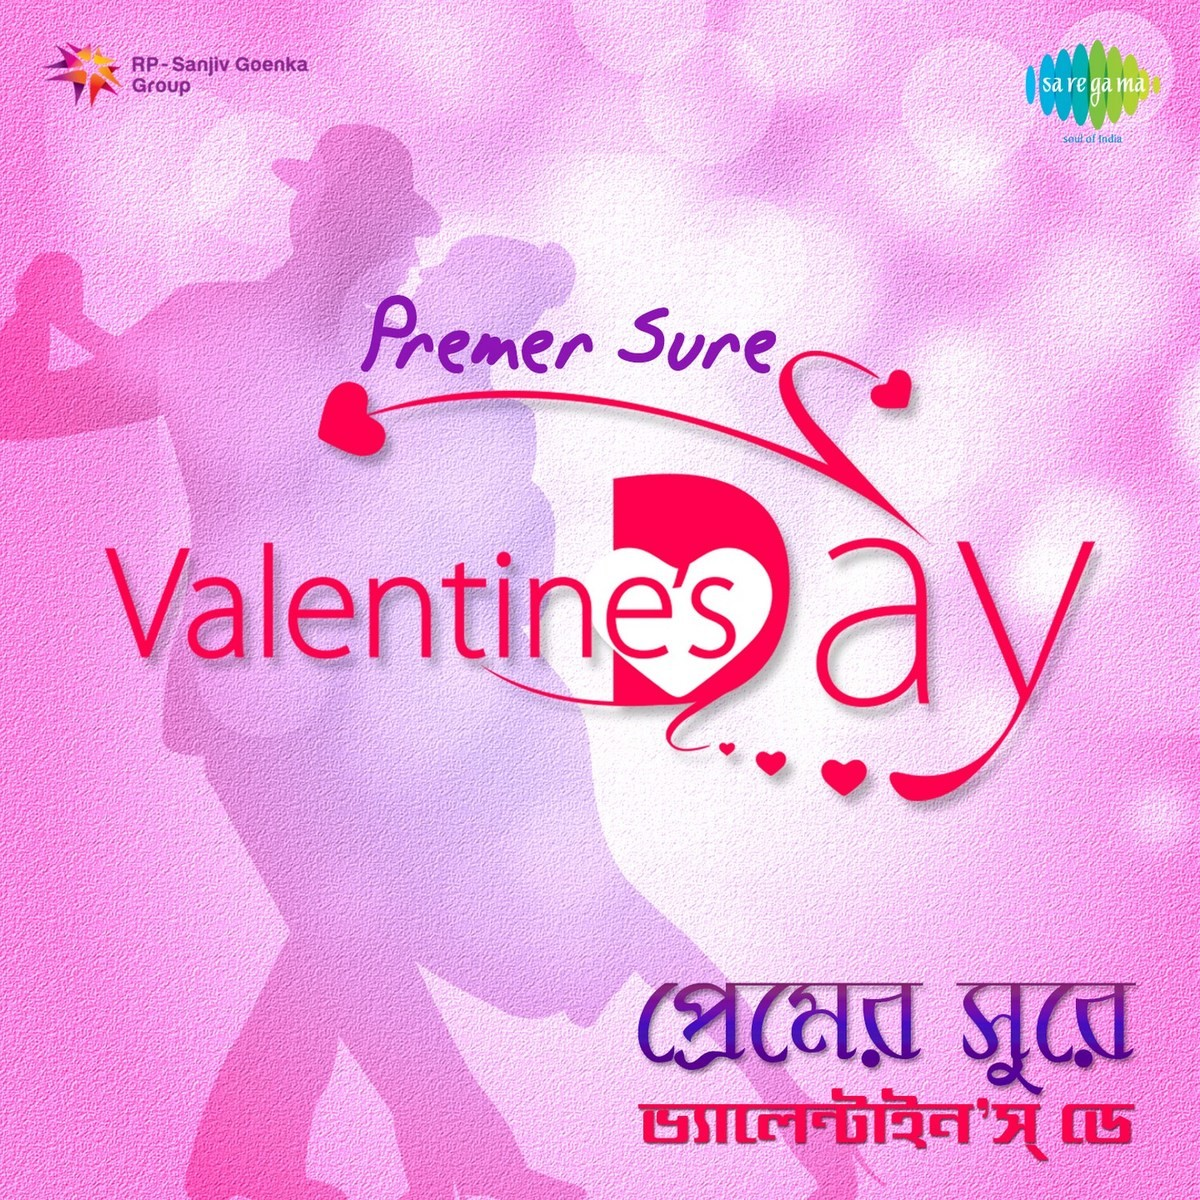 Tomra Asbe To Mp3 Song Download Premer Sure Valentines Day